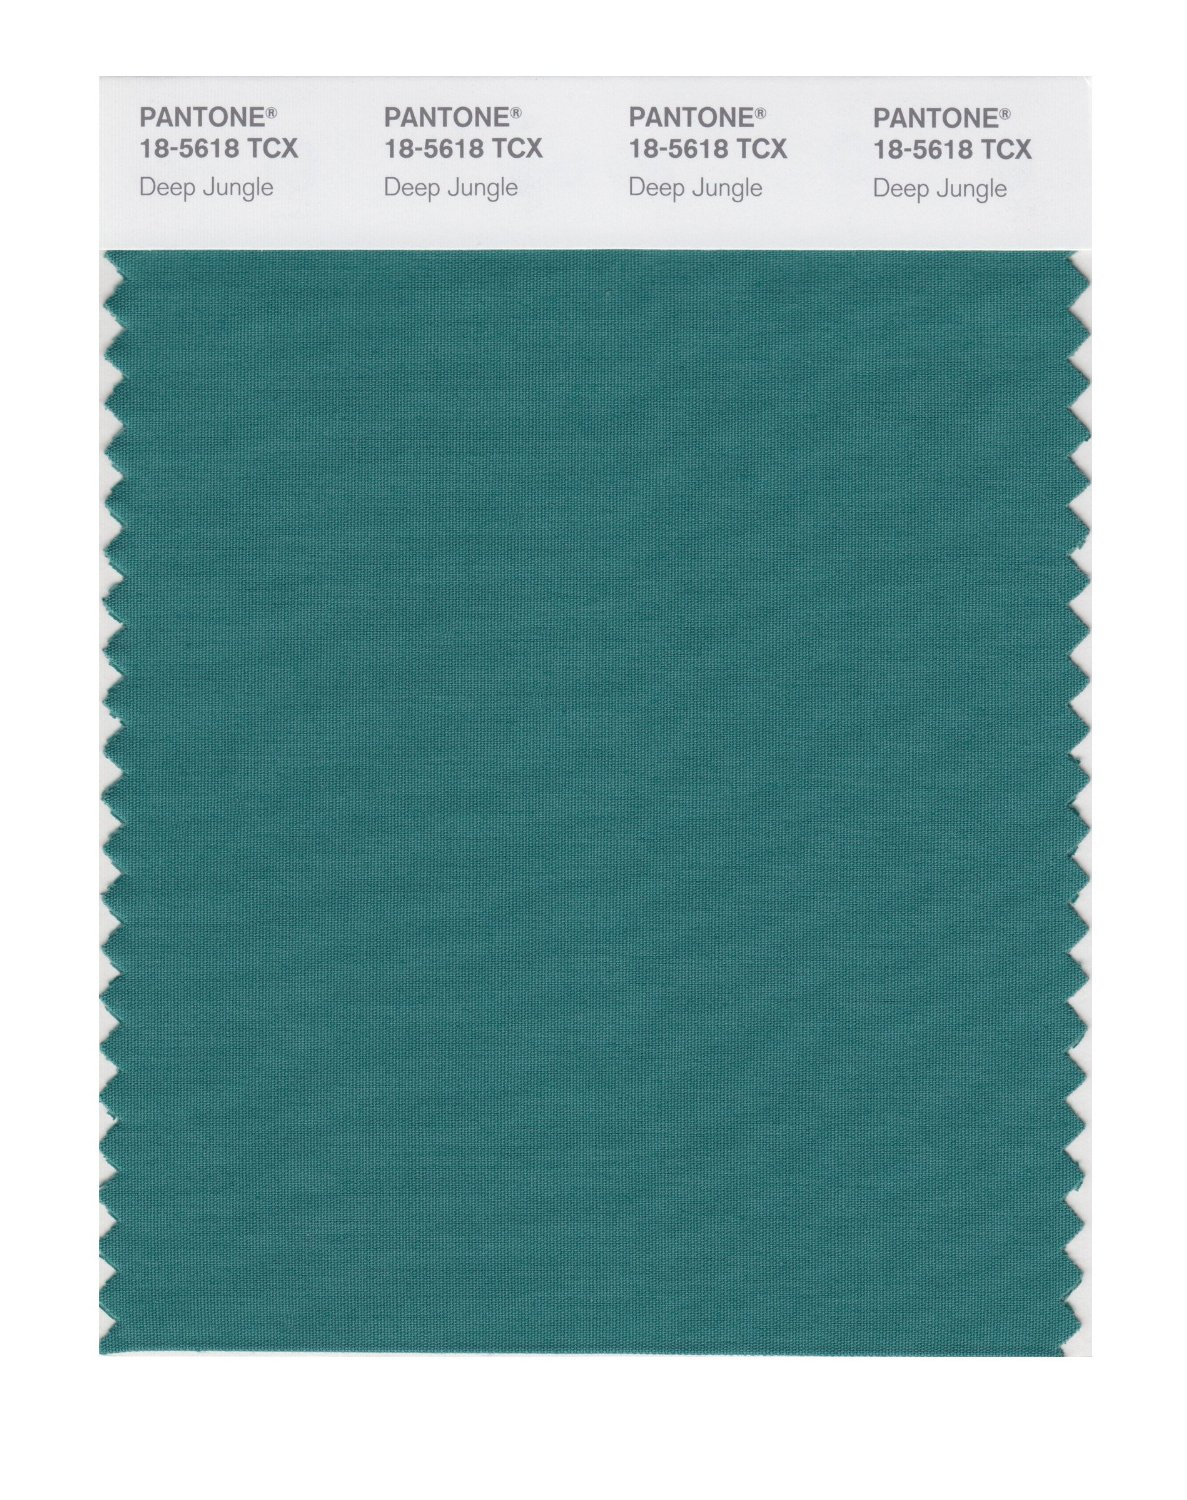 Pantone Smart Swatch 18-5618 Deep Jungle